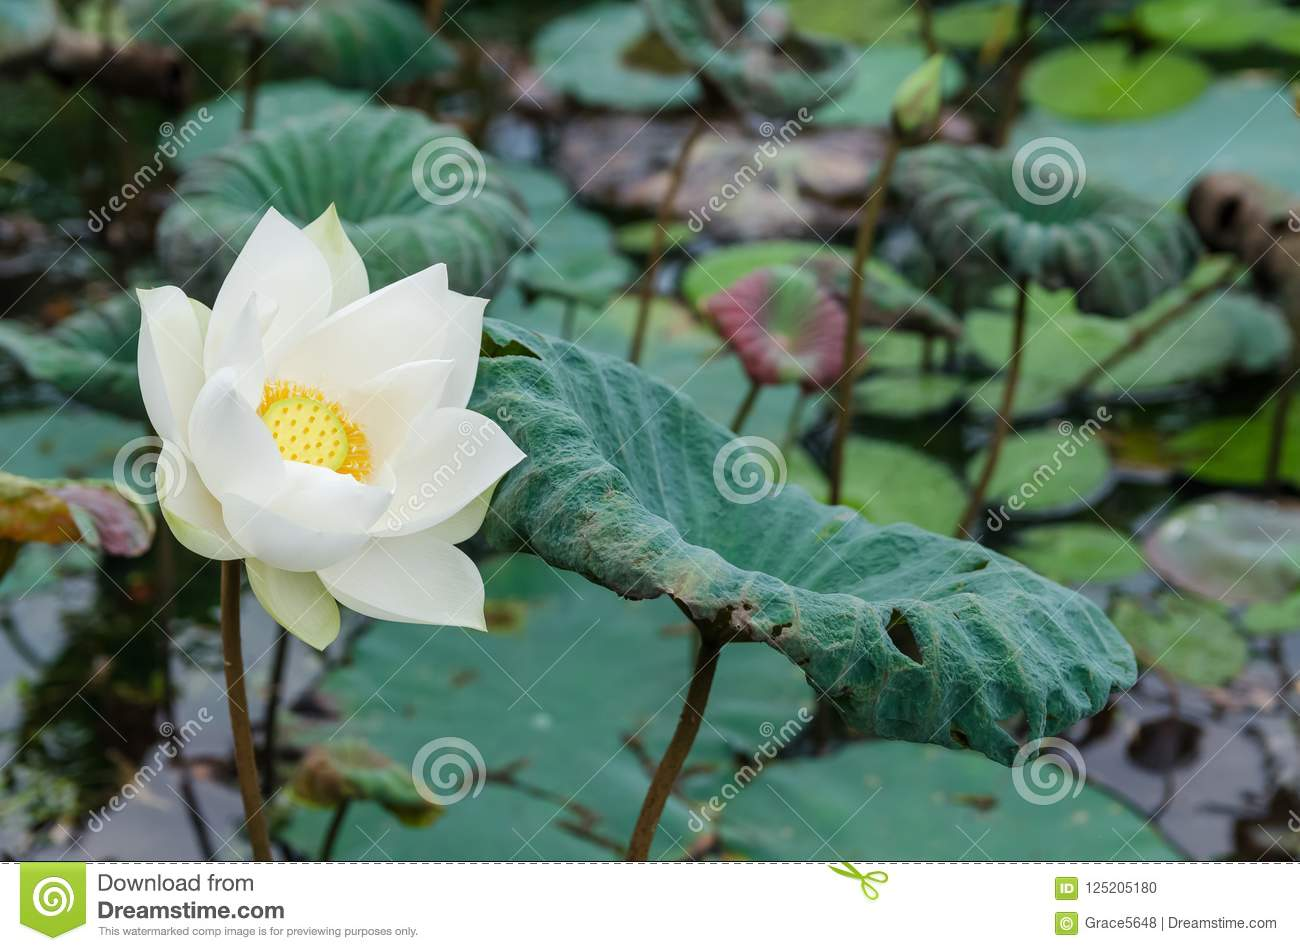 Scenic View Of The White Lotus Flower In The Pond Stock Photo